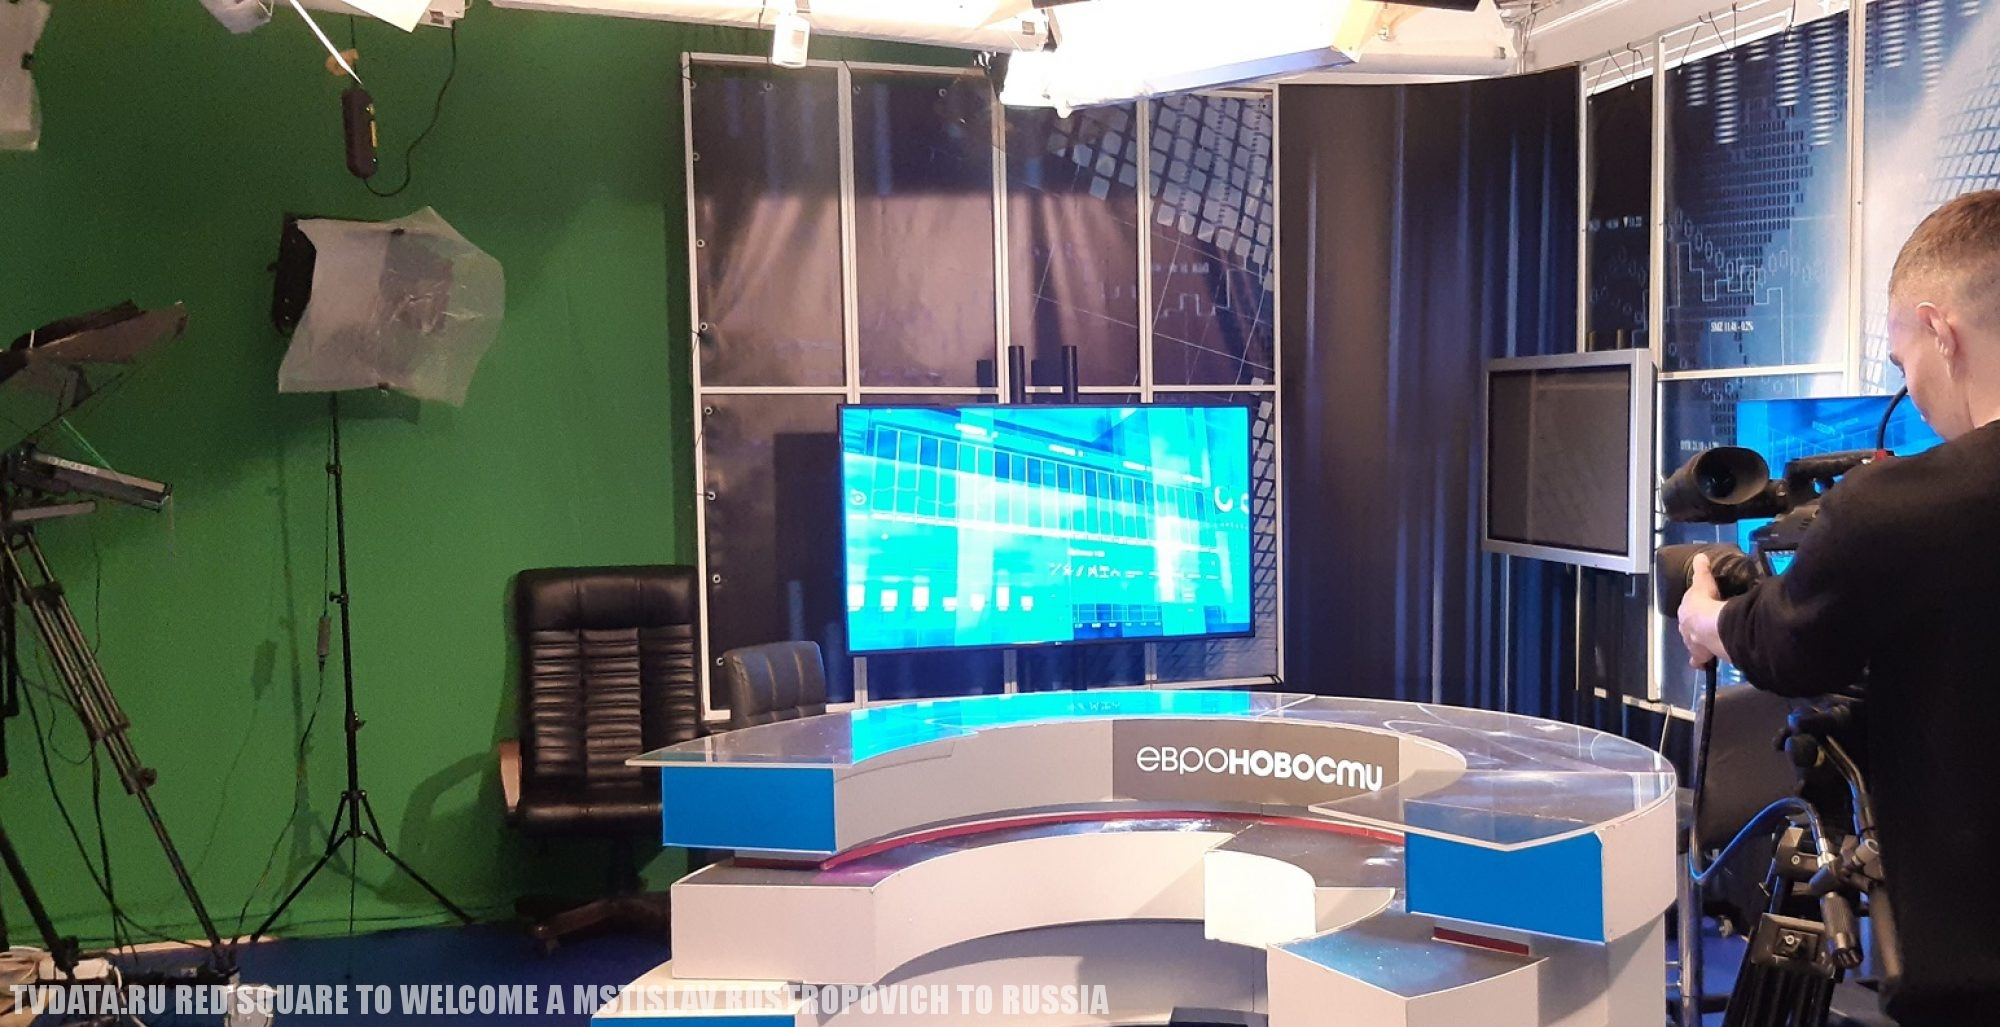 MEDIA in Russia, LIVE STREAMING STUDIO, Camera crew in Moscow